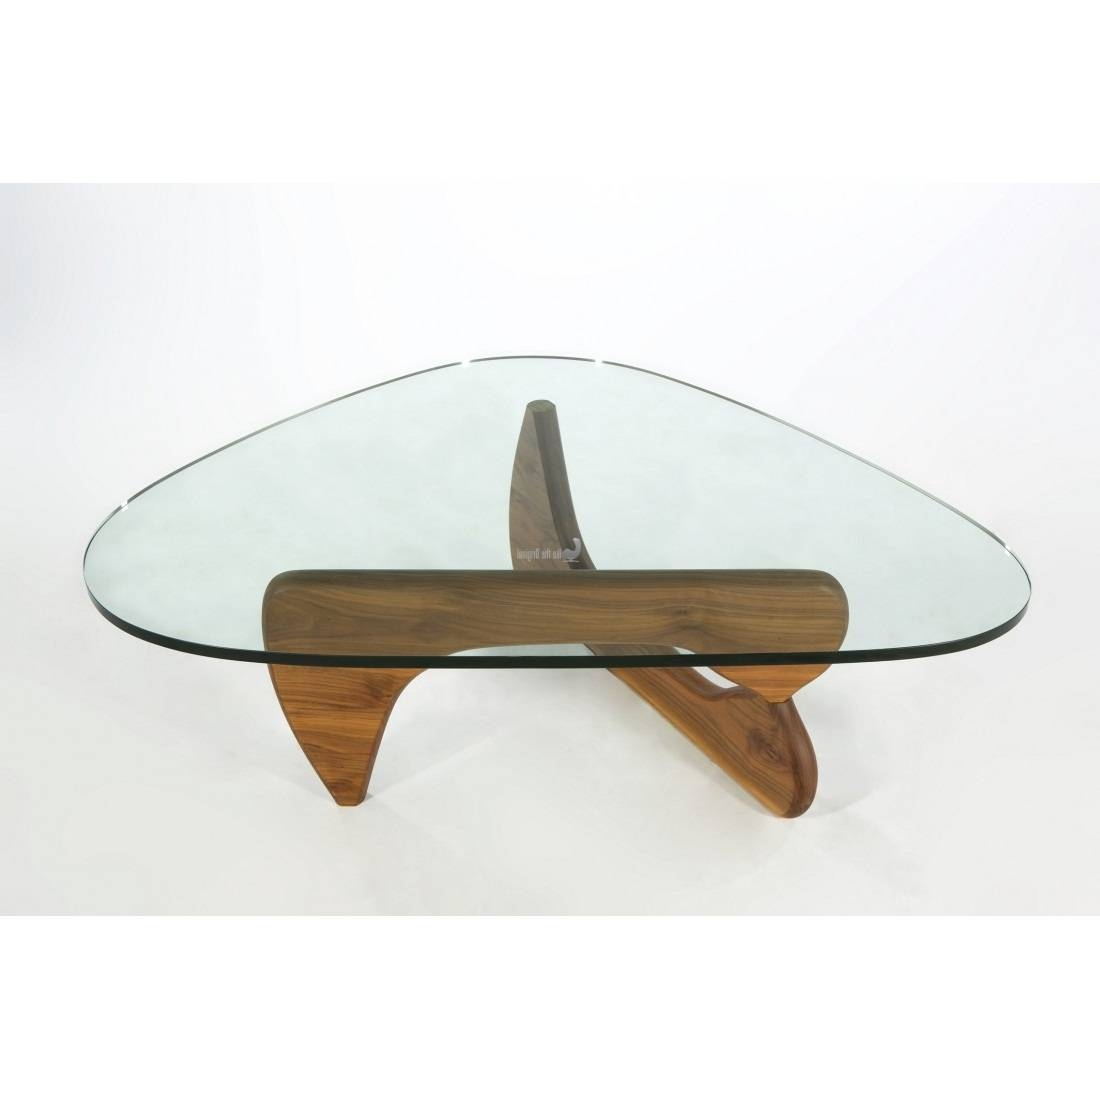 Unique Glass Coffee Tables - Worldtipitaka within Unique Glass Coffee Tables (Image 15 of 15)